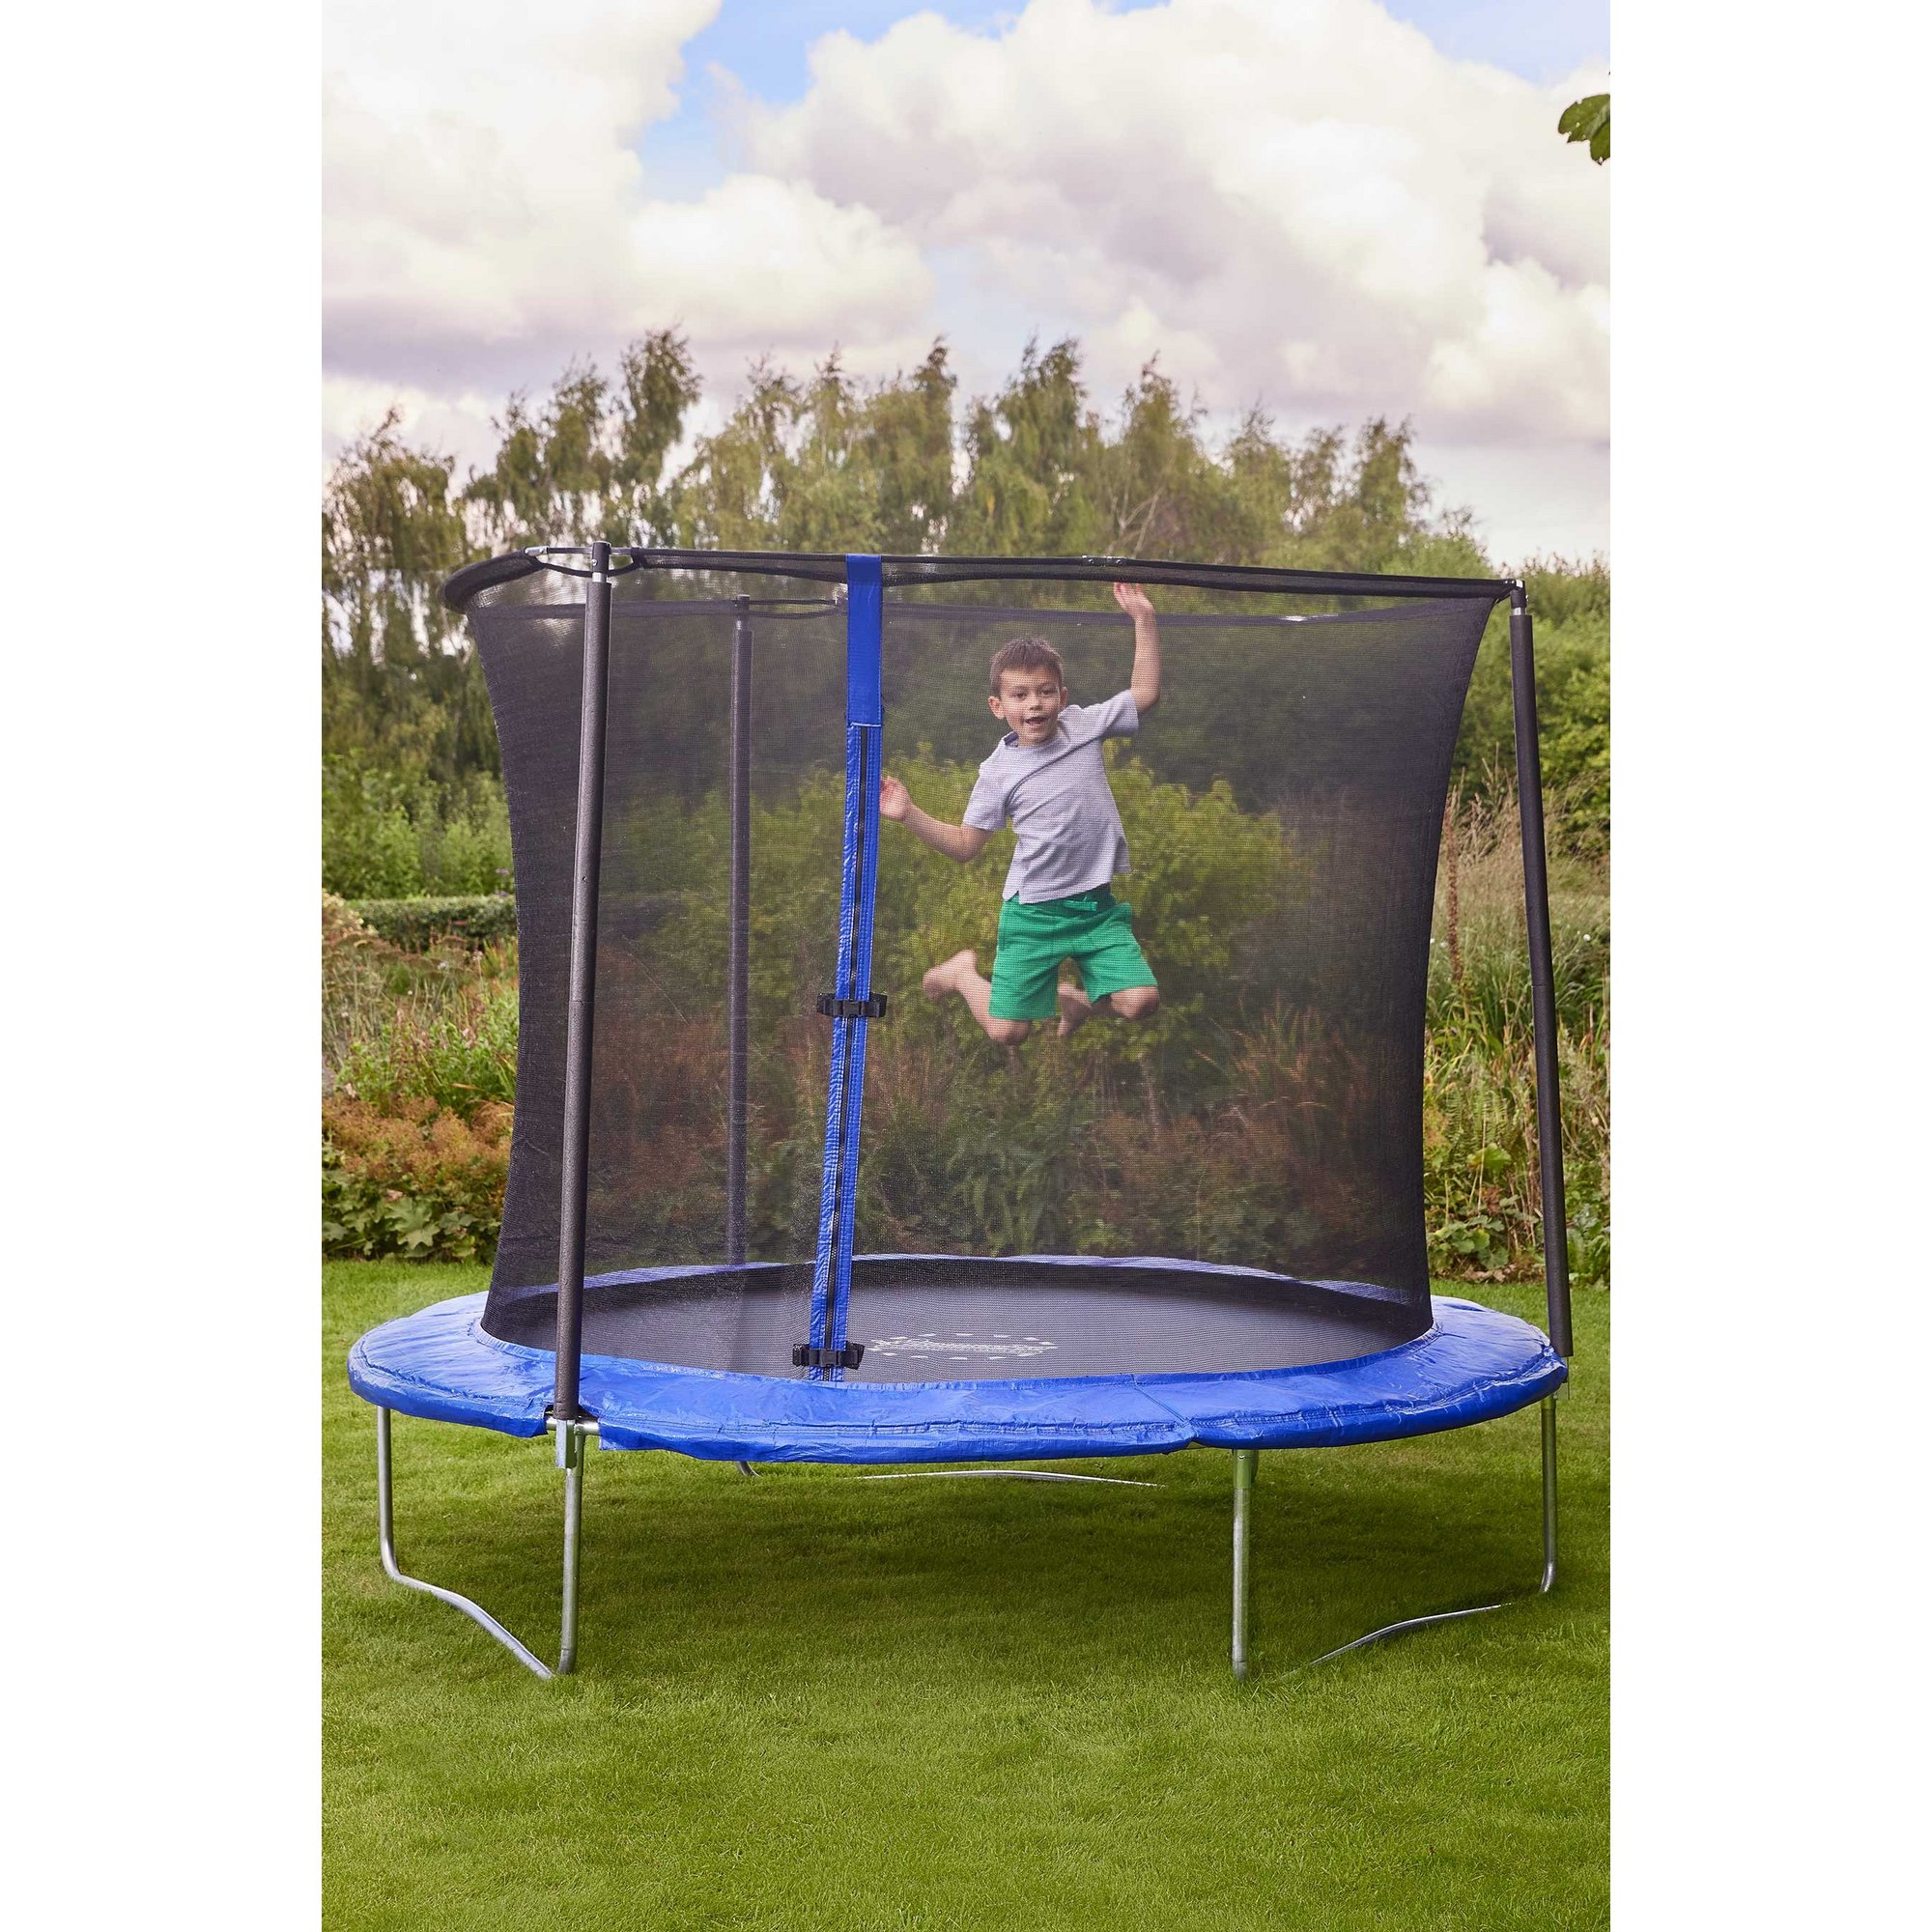 Image of Sportspower 8ft Bounce Pro Trampoline with Enclosure